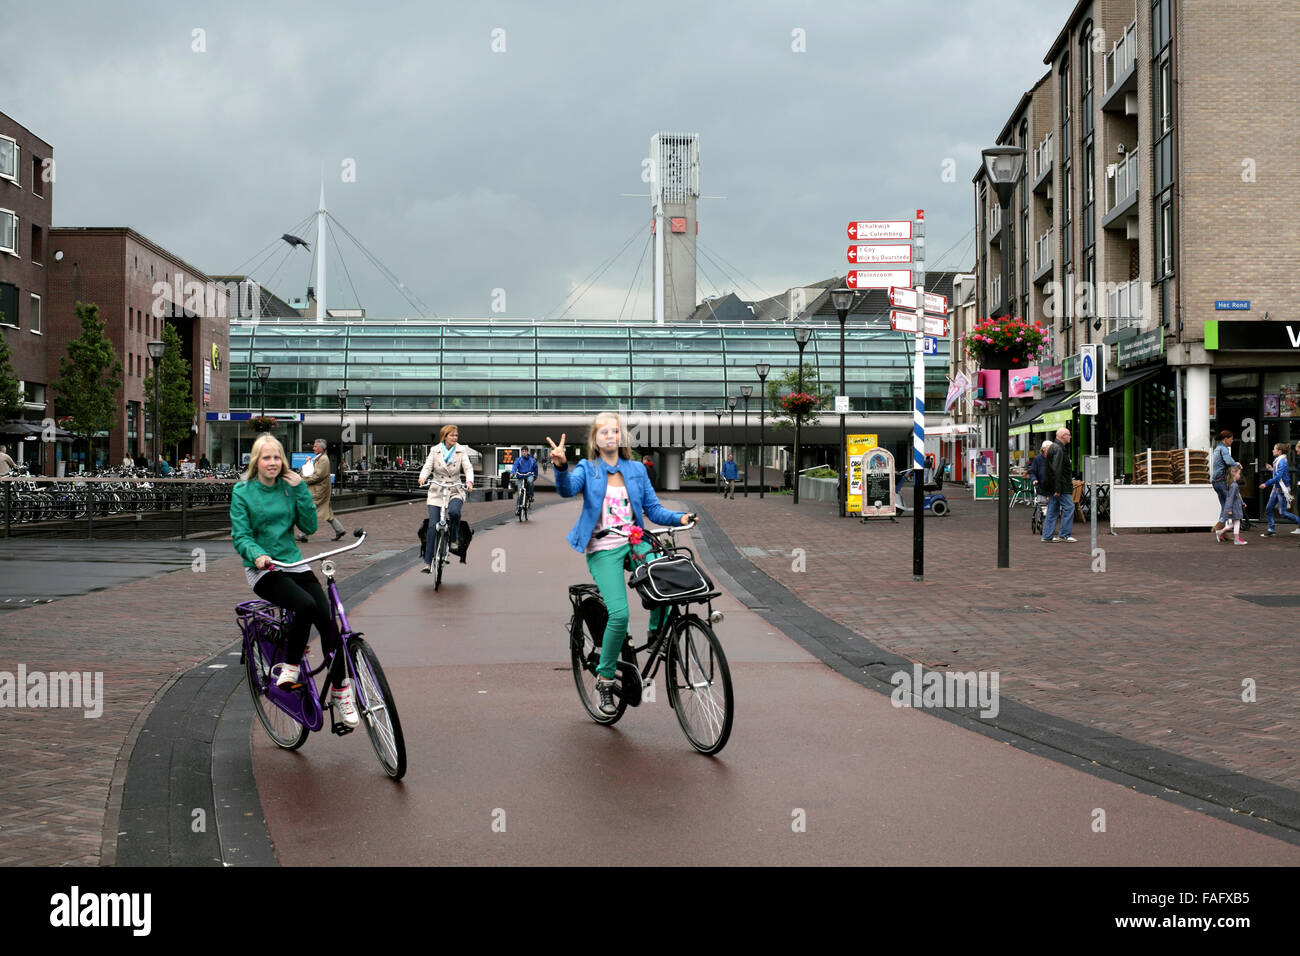 Cyclists in the traffic-free centre of Houten, a new town near Utrecht in The Netherlands. - Stock Image